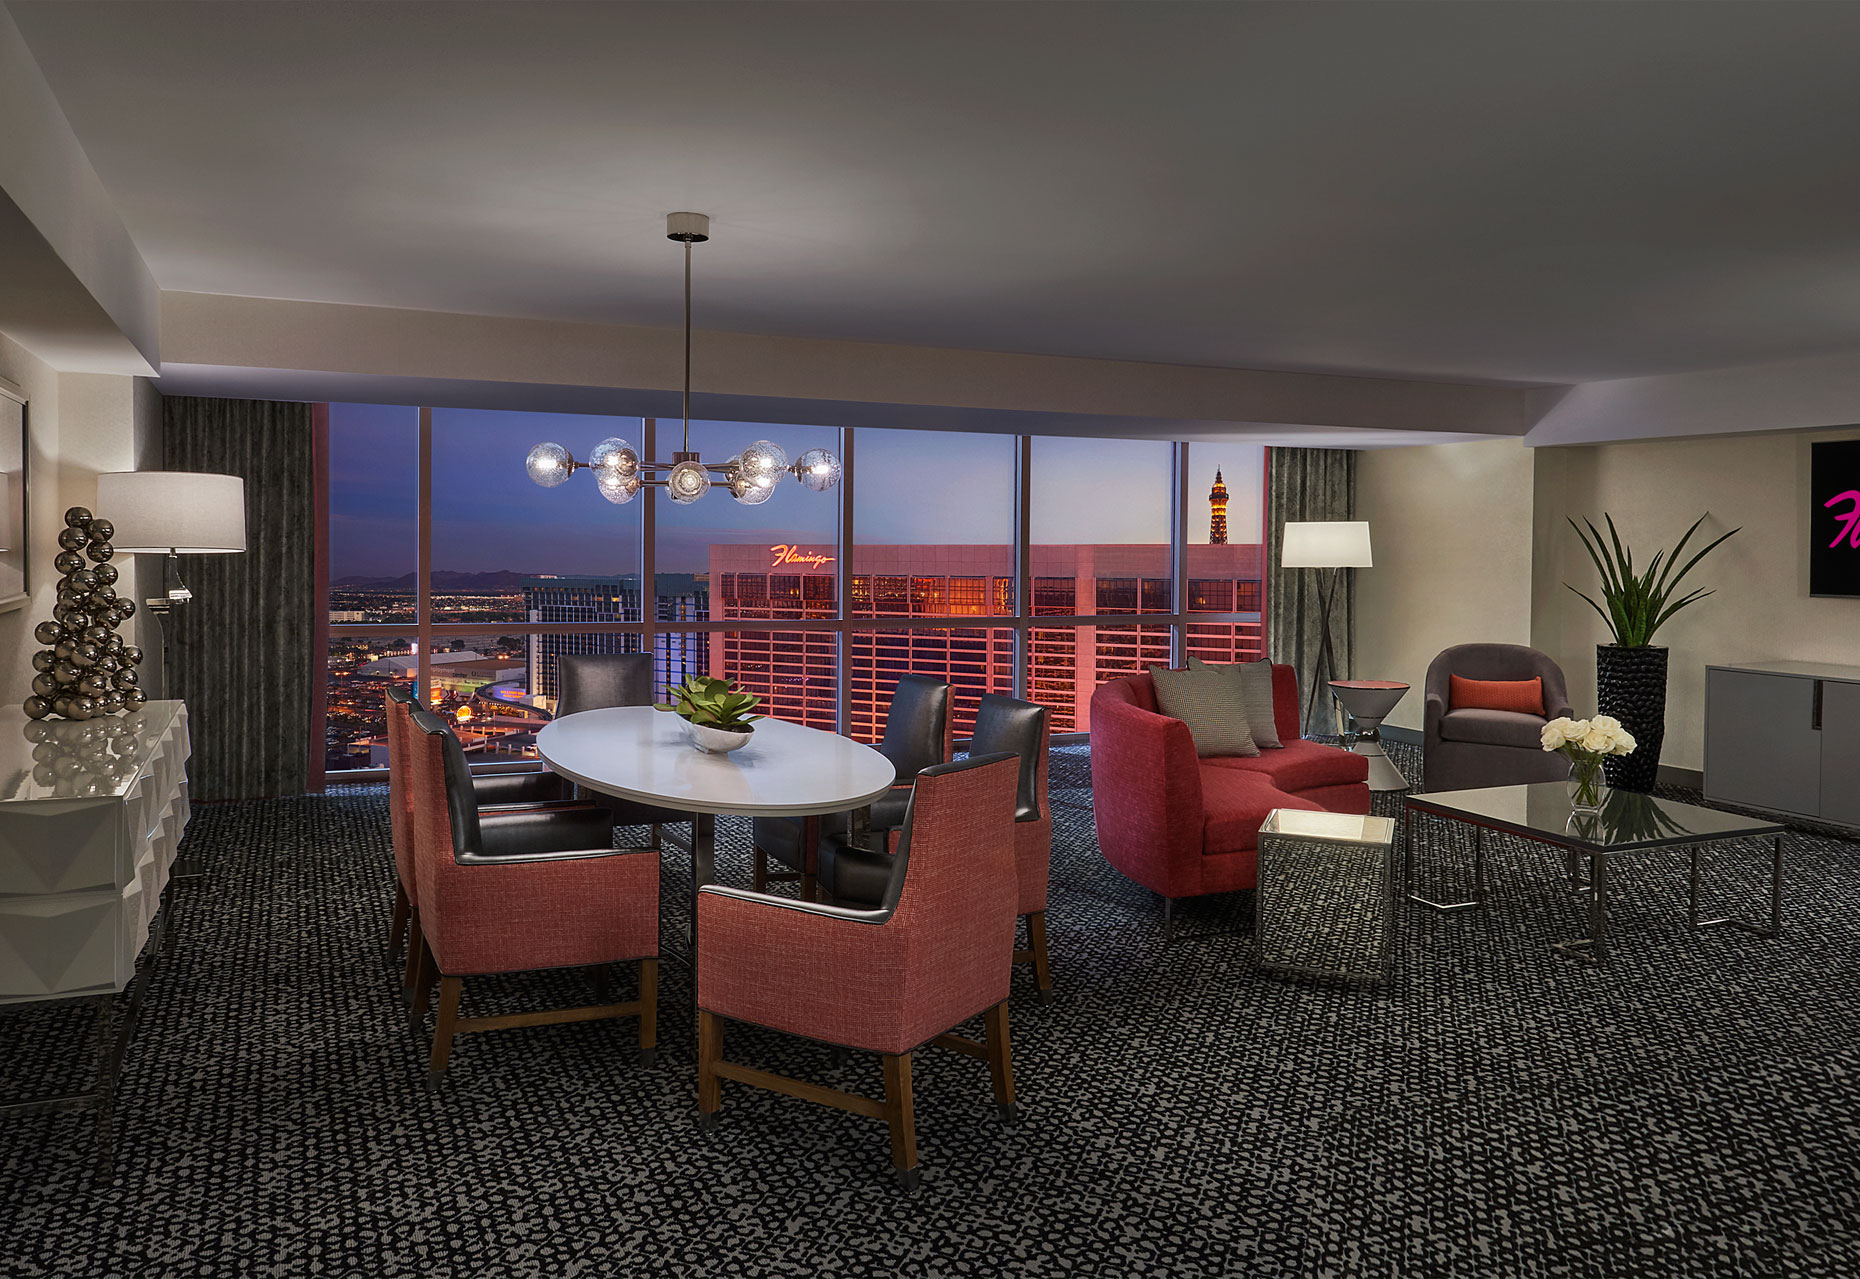 THE-FLAMINGO-ROOM-27159-OverviewWithLogo